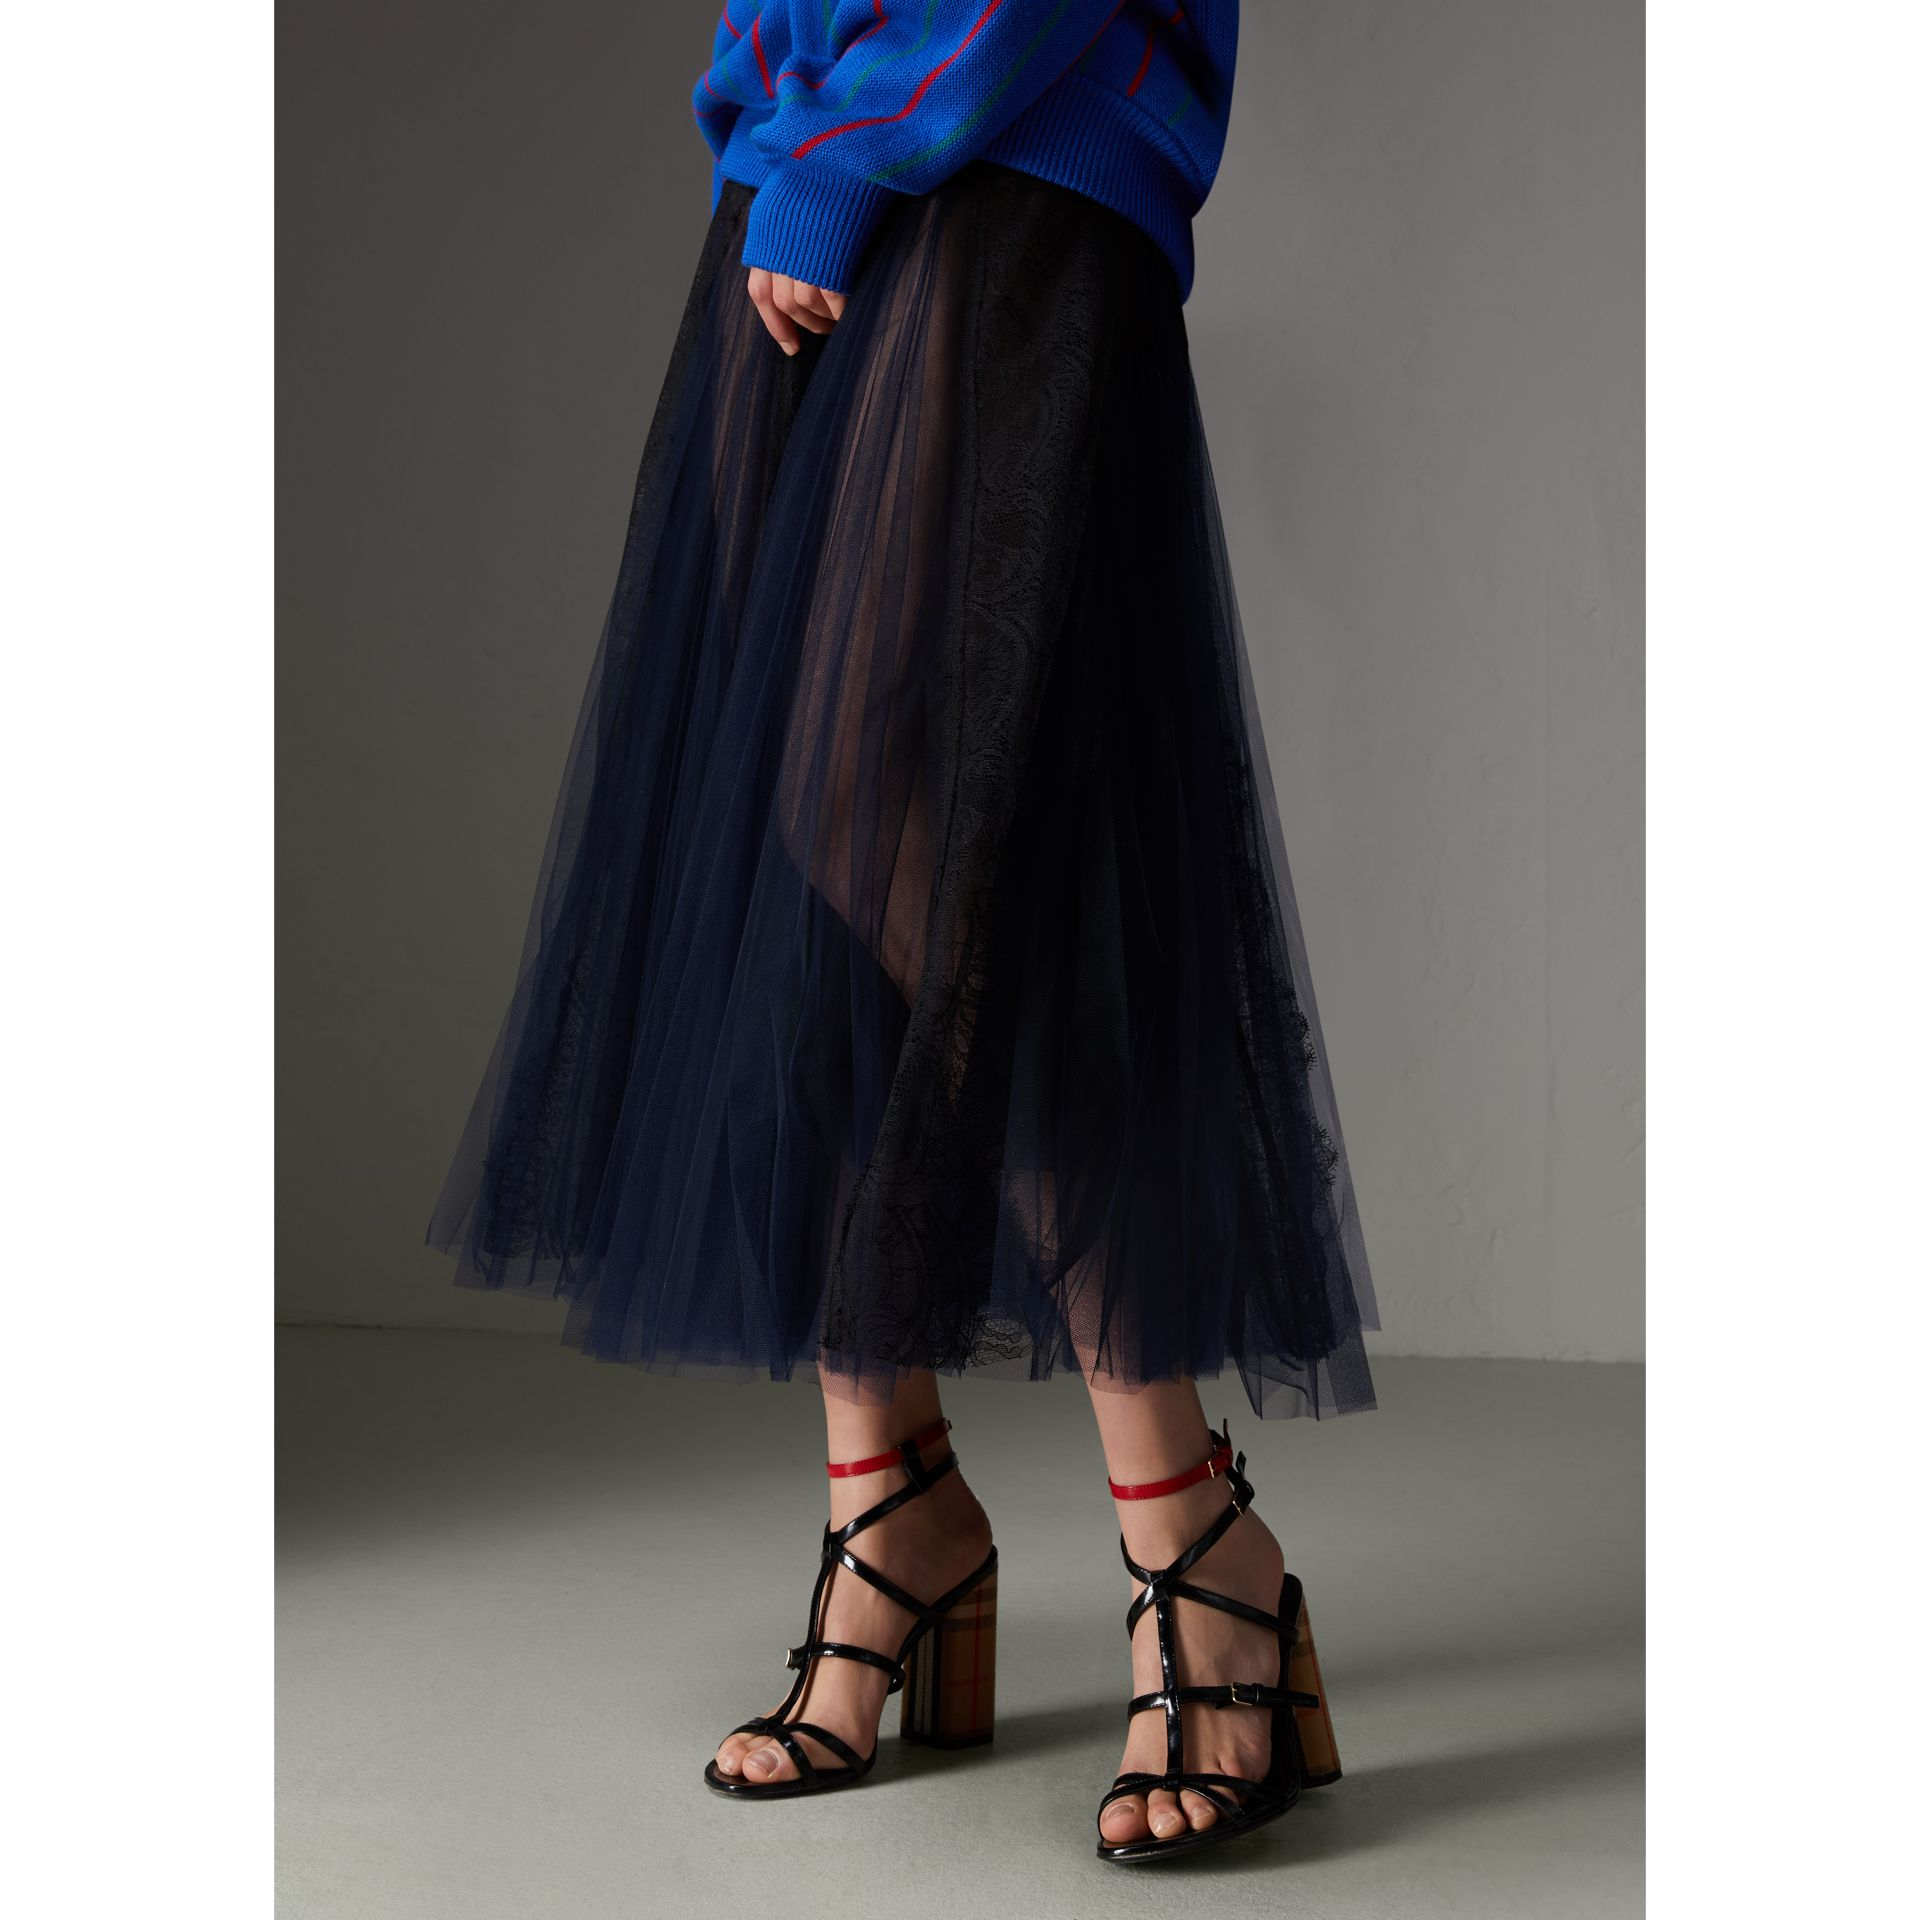 Lace Panel Pleated Tulle Skirt in Navy - Women | Burberry Australia - gallery image 4